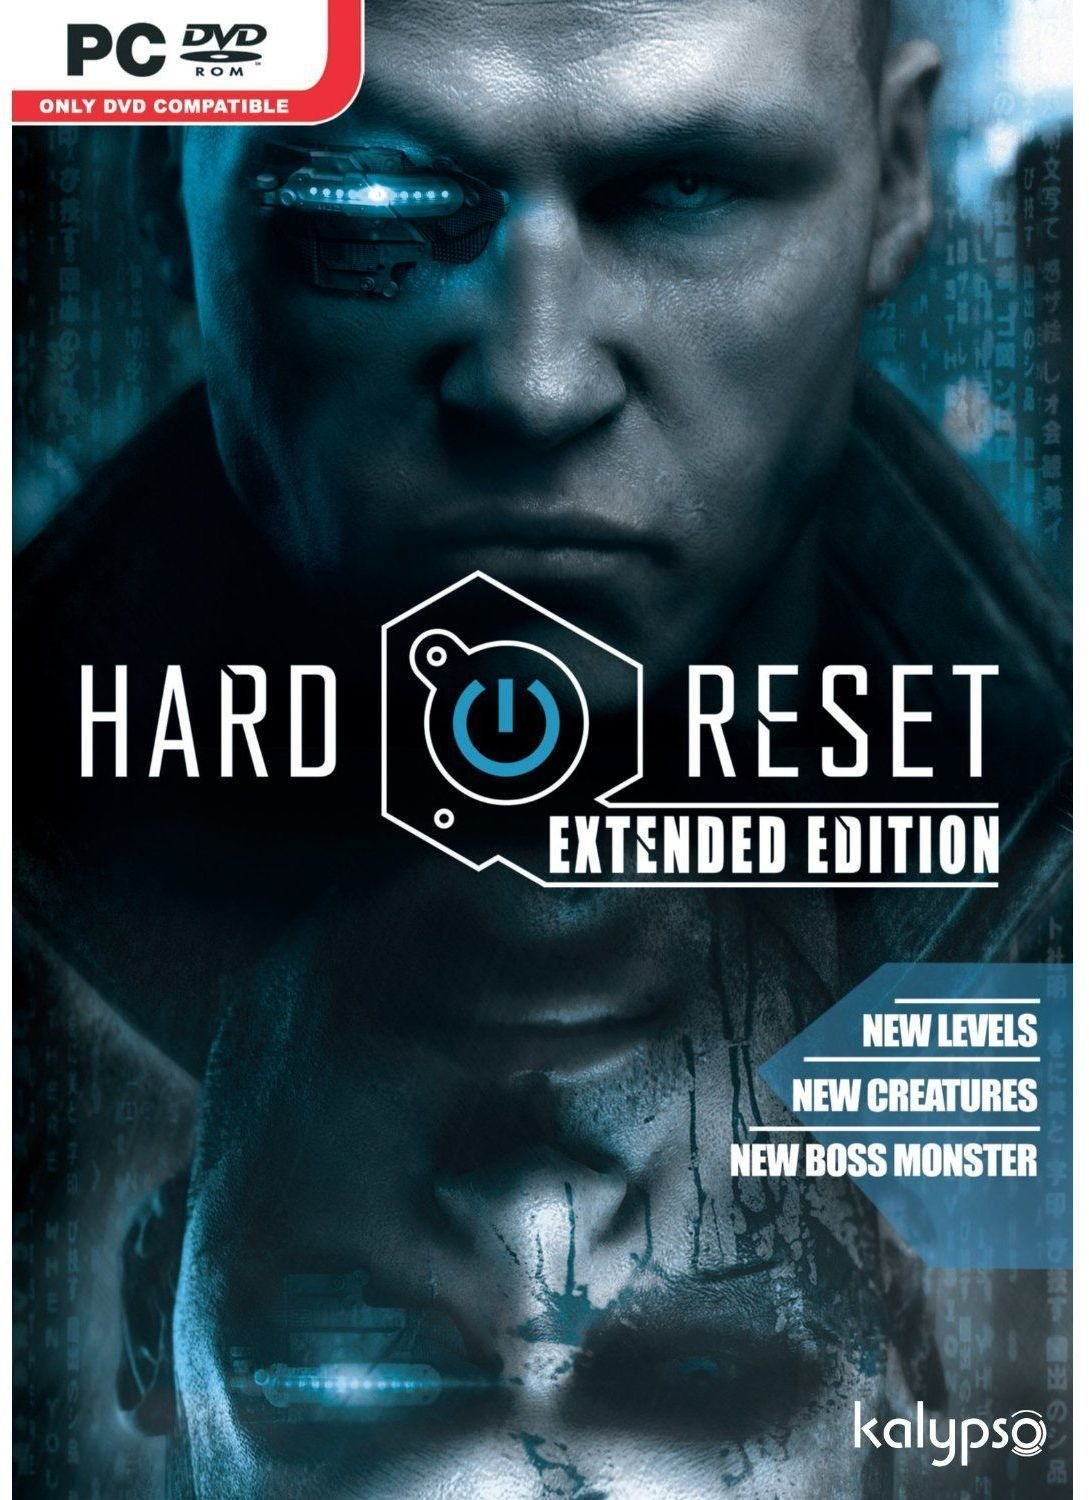 Hard Reset: Extended Edition (PC) Review 2